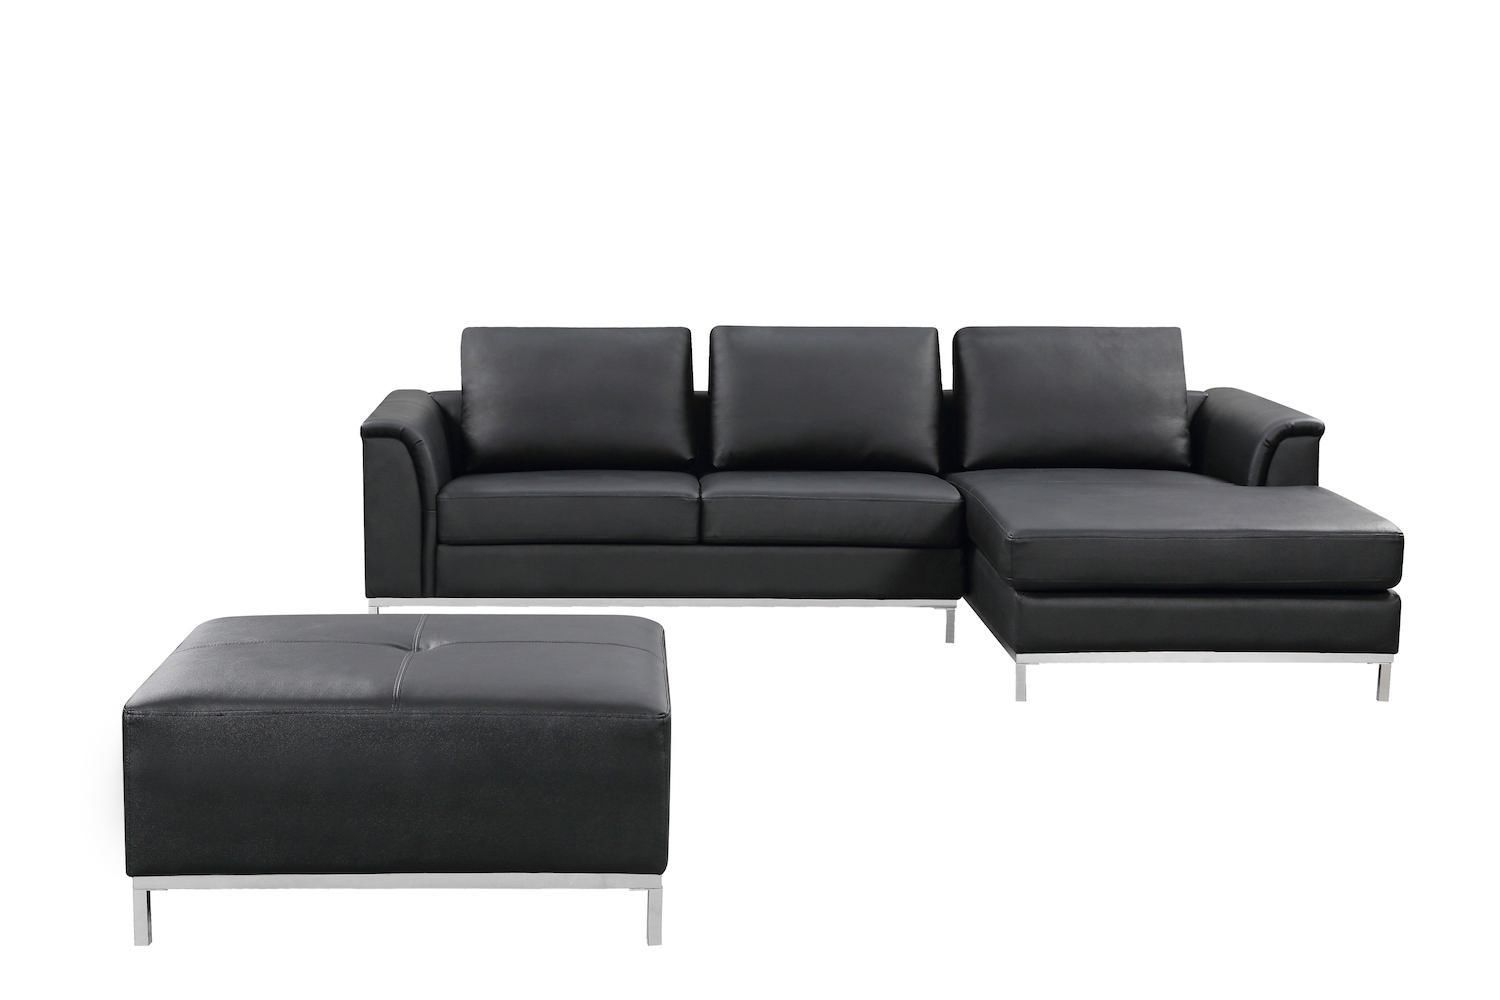 Genuine Leather Sectional Canada Velago Ollon Black Leather Sectional Sofa